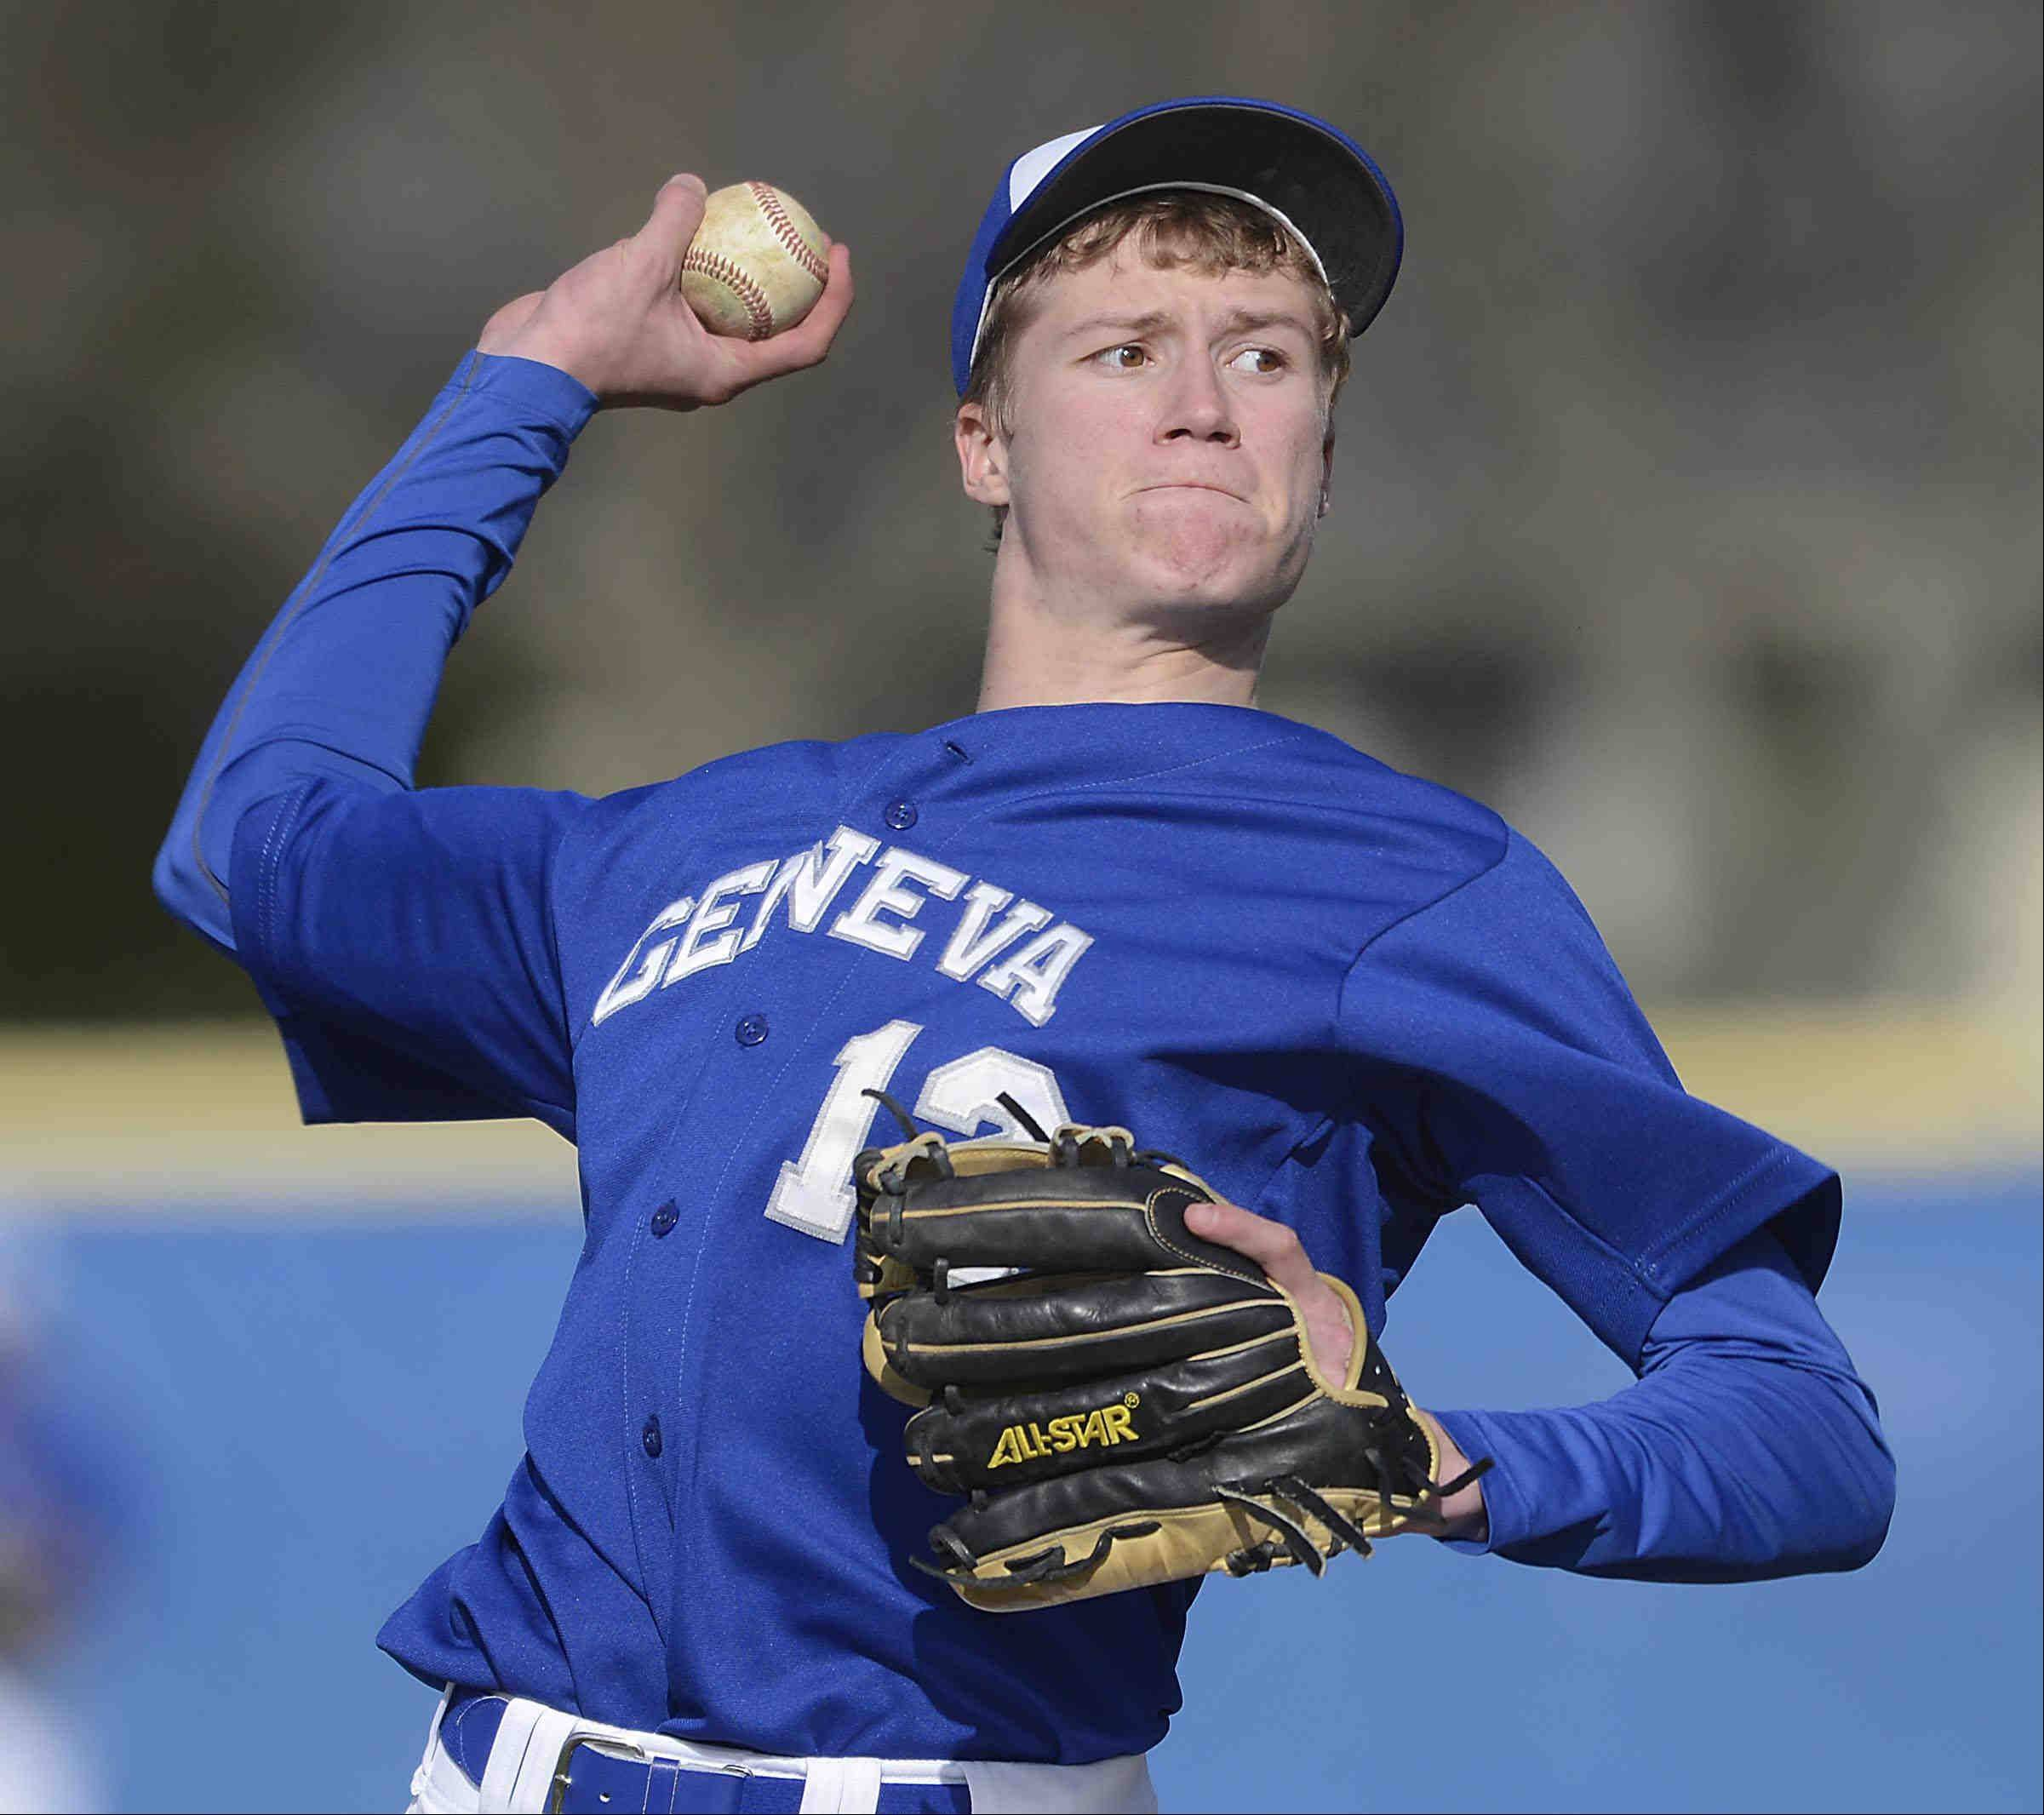 Geneva starting pitcher Brock Chenier throws against St. Charles East Thursday in Geneva.